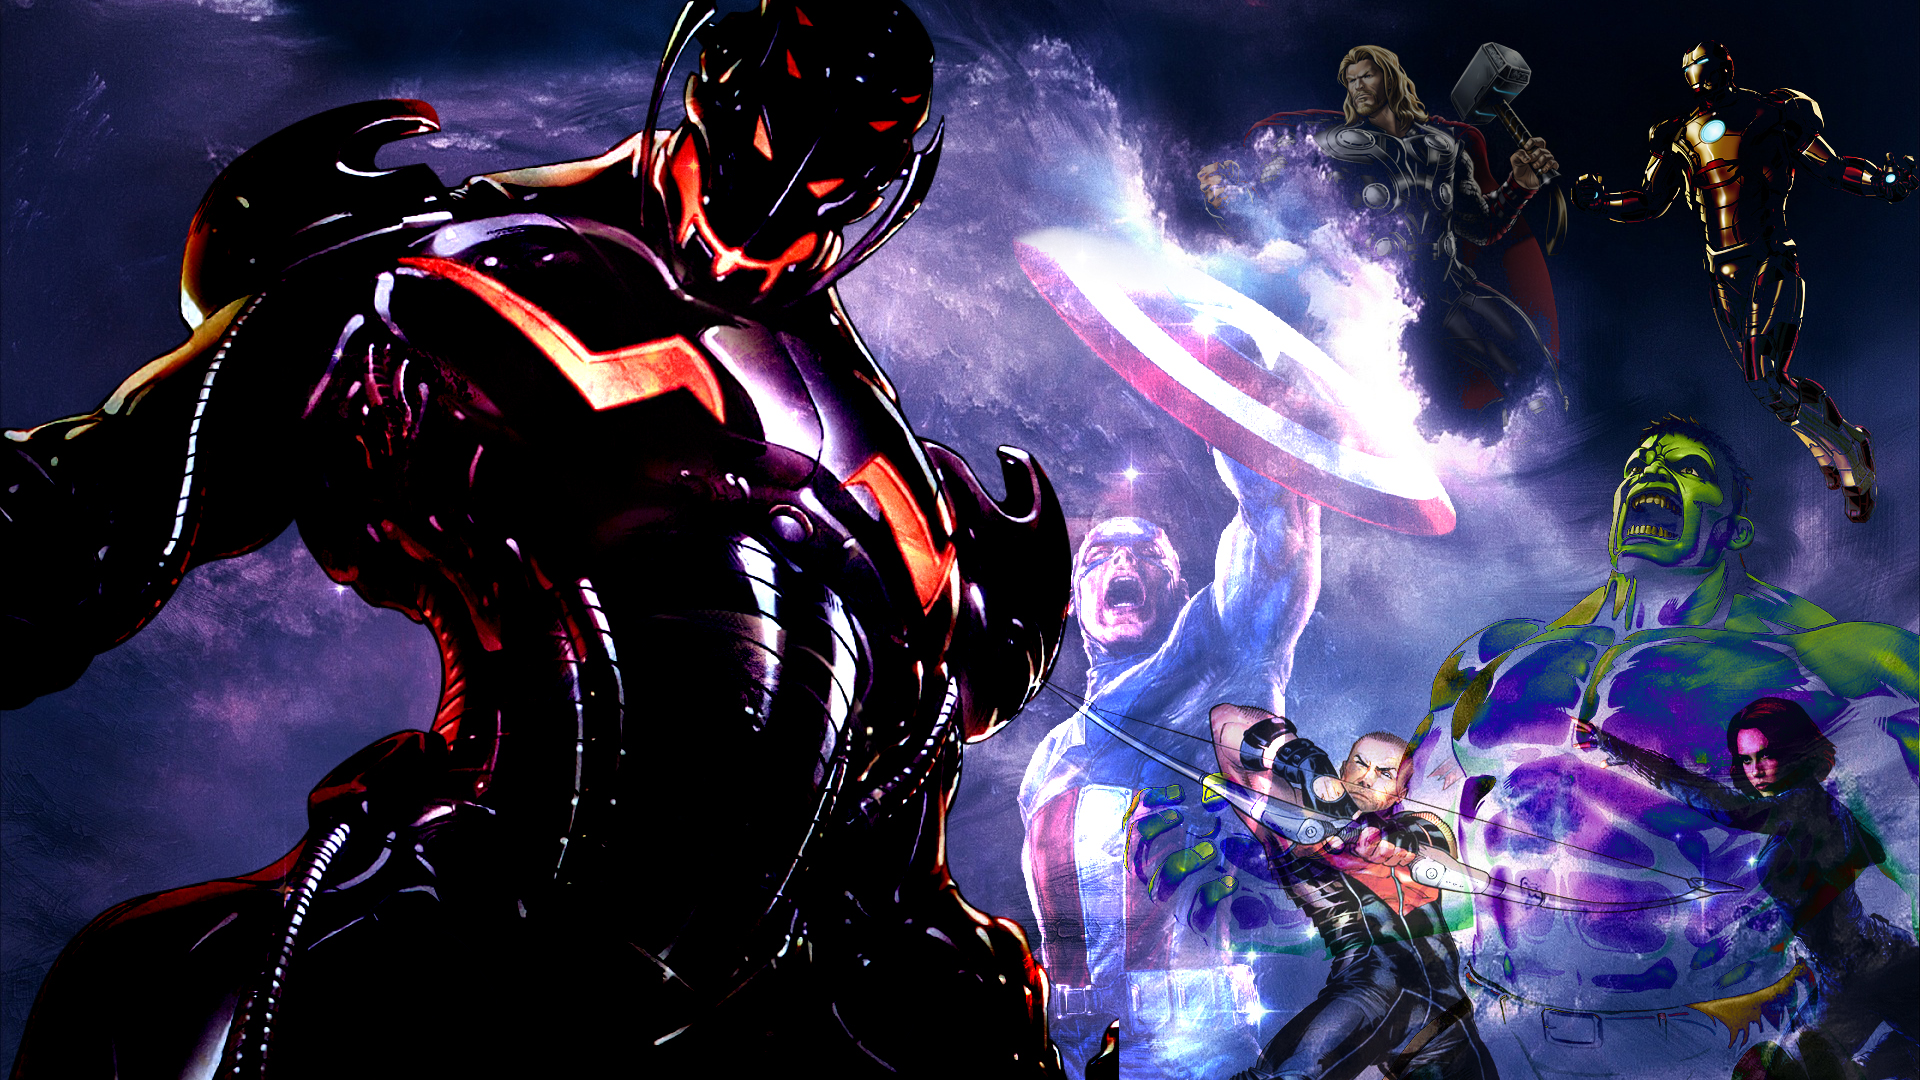 Age Of Ultron Wallpaper by 19genocide87 1920x1080